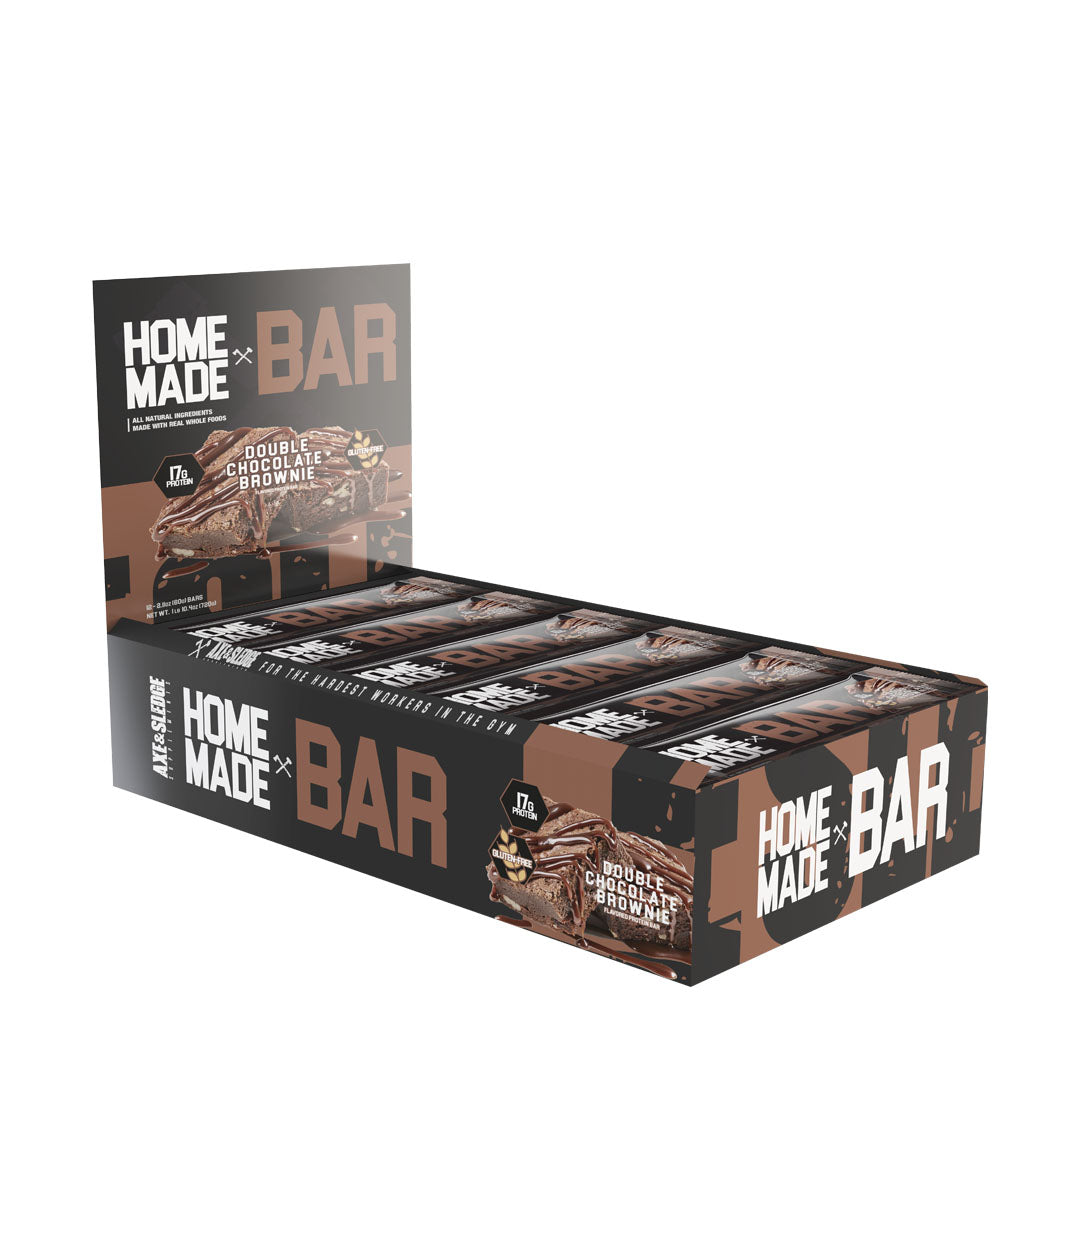 Home Made Bar - Box of 12 // Double Chocolate Brownie